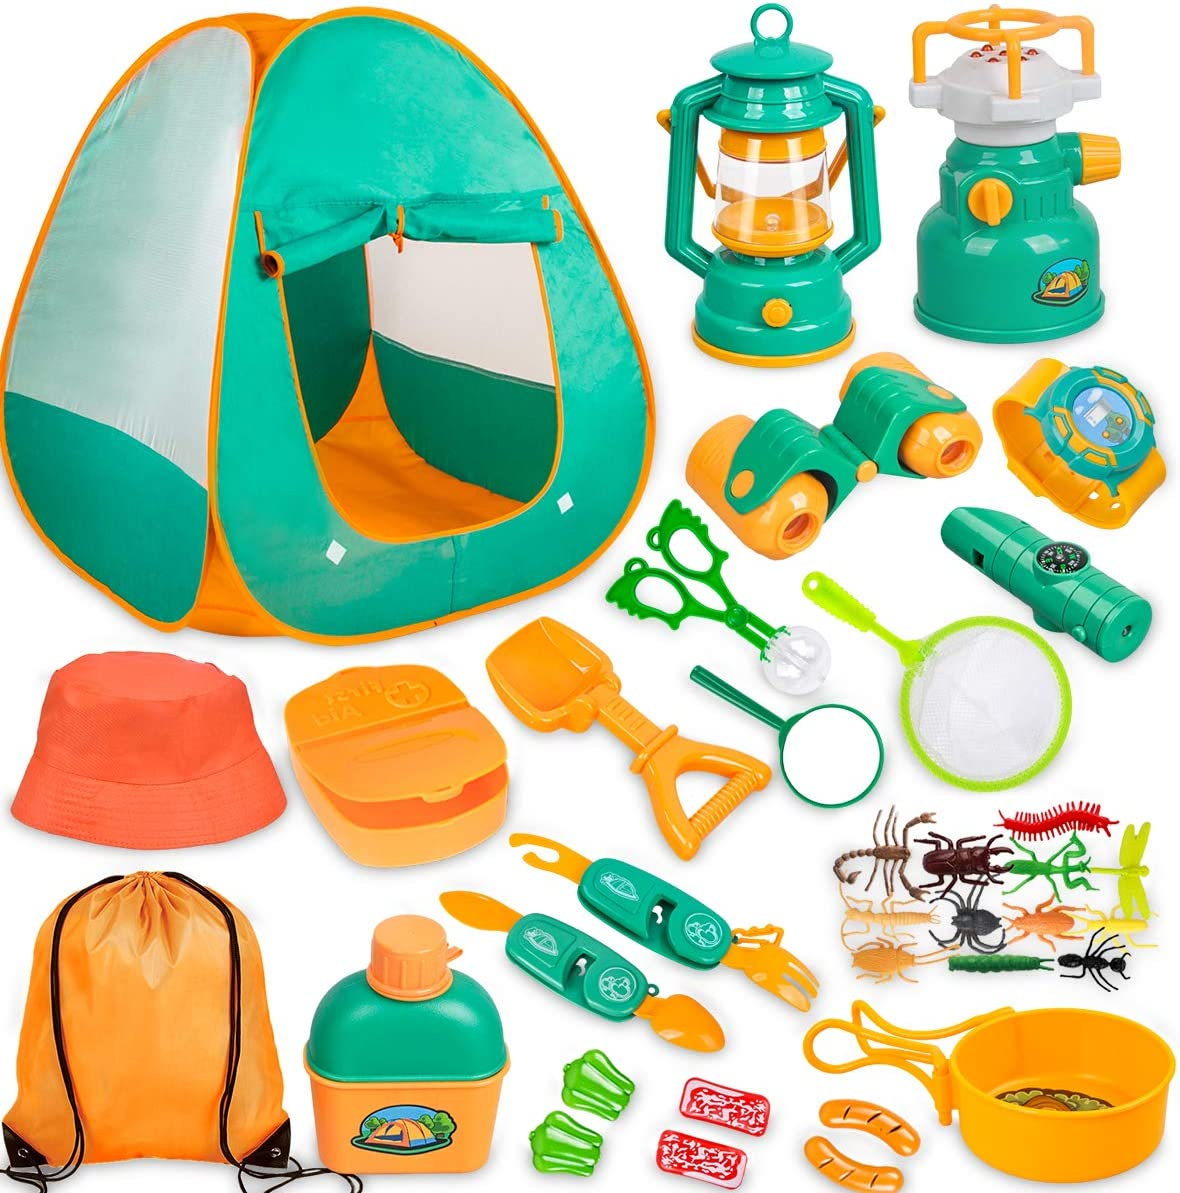 Meland Kids Camping Set with Tent